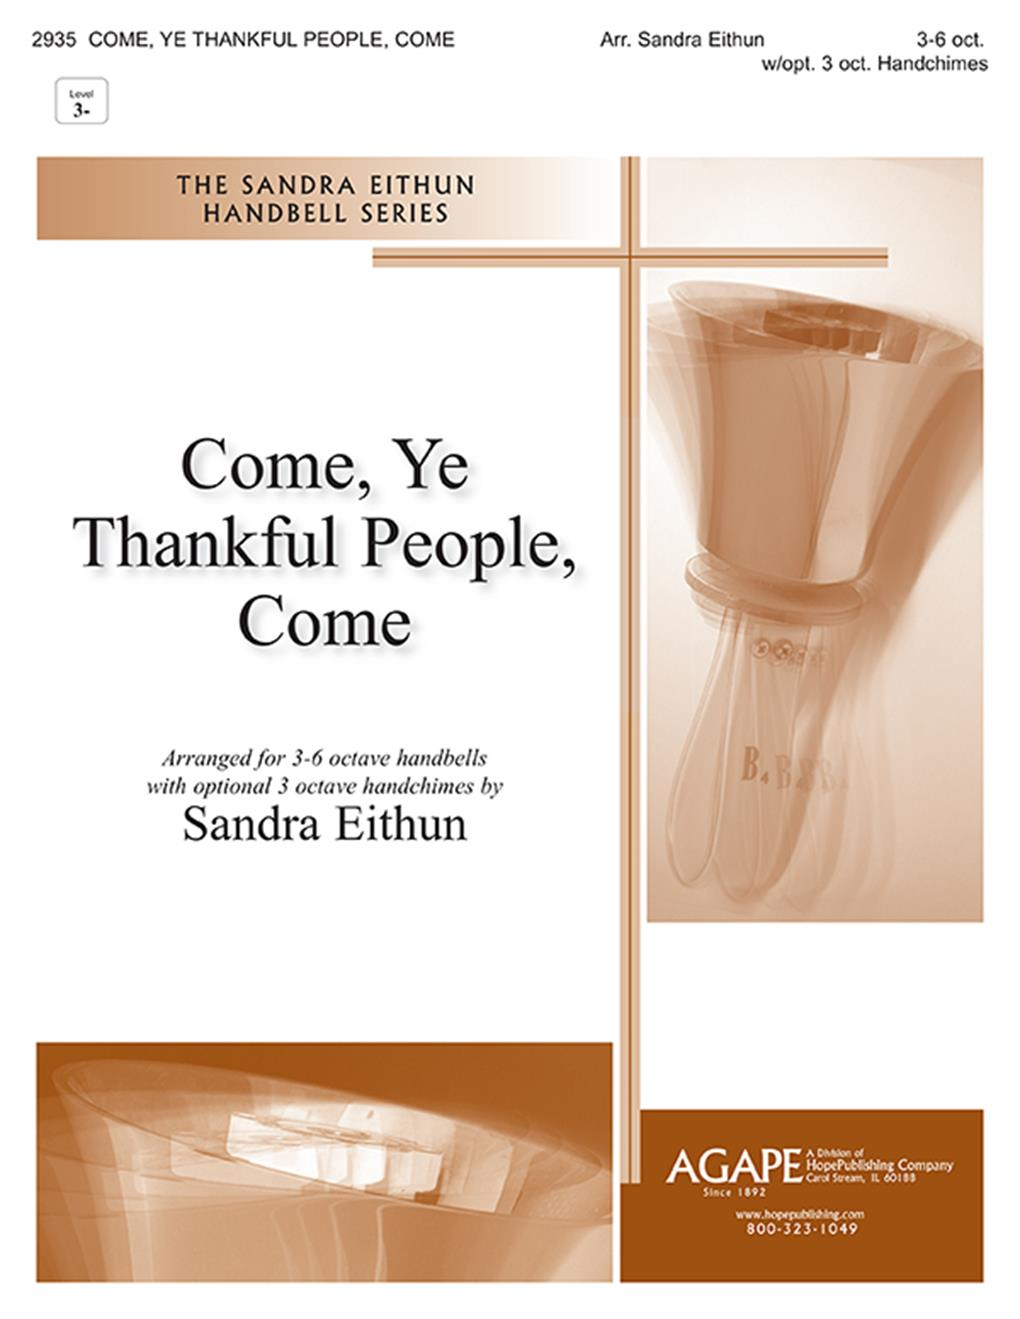 Come Ye Thankful People Come - 3-6 Oct. Cover Image